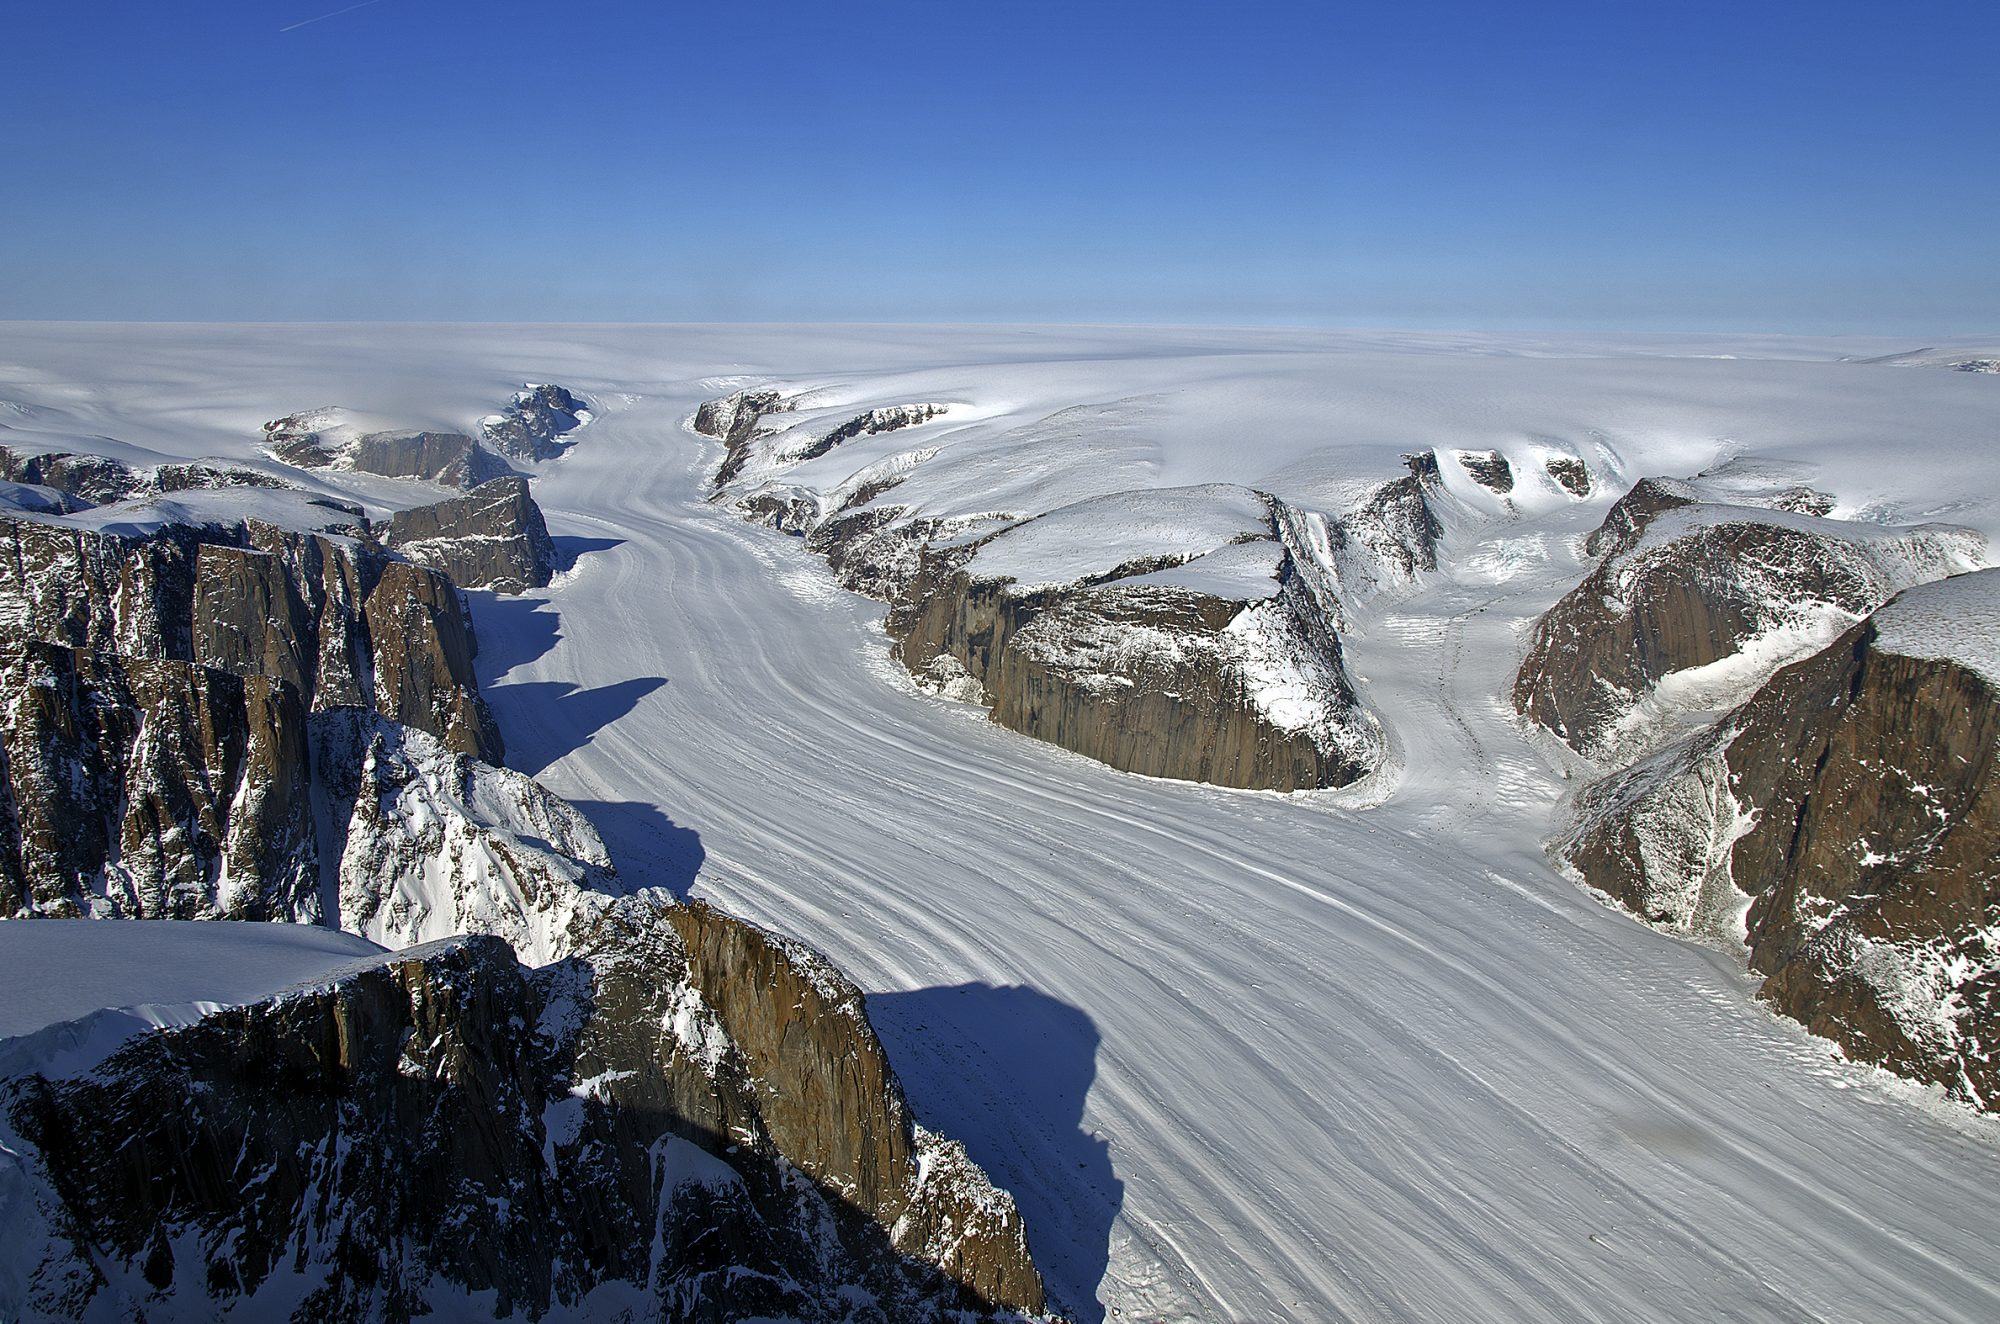 Penny Ice Cap in Auyuittuq National Park of Baffin Island, Nunavut, Canada (Source: NASA/Creative Commons).